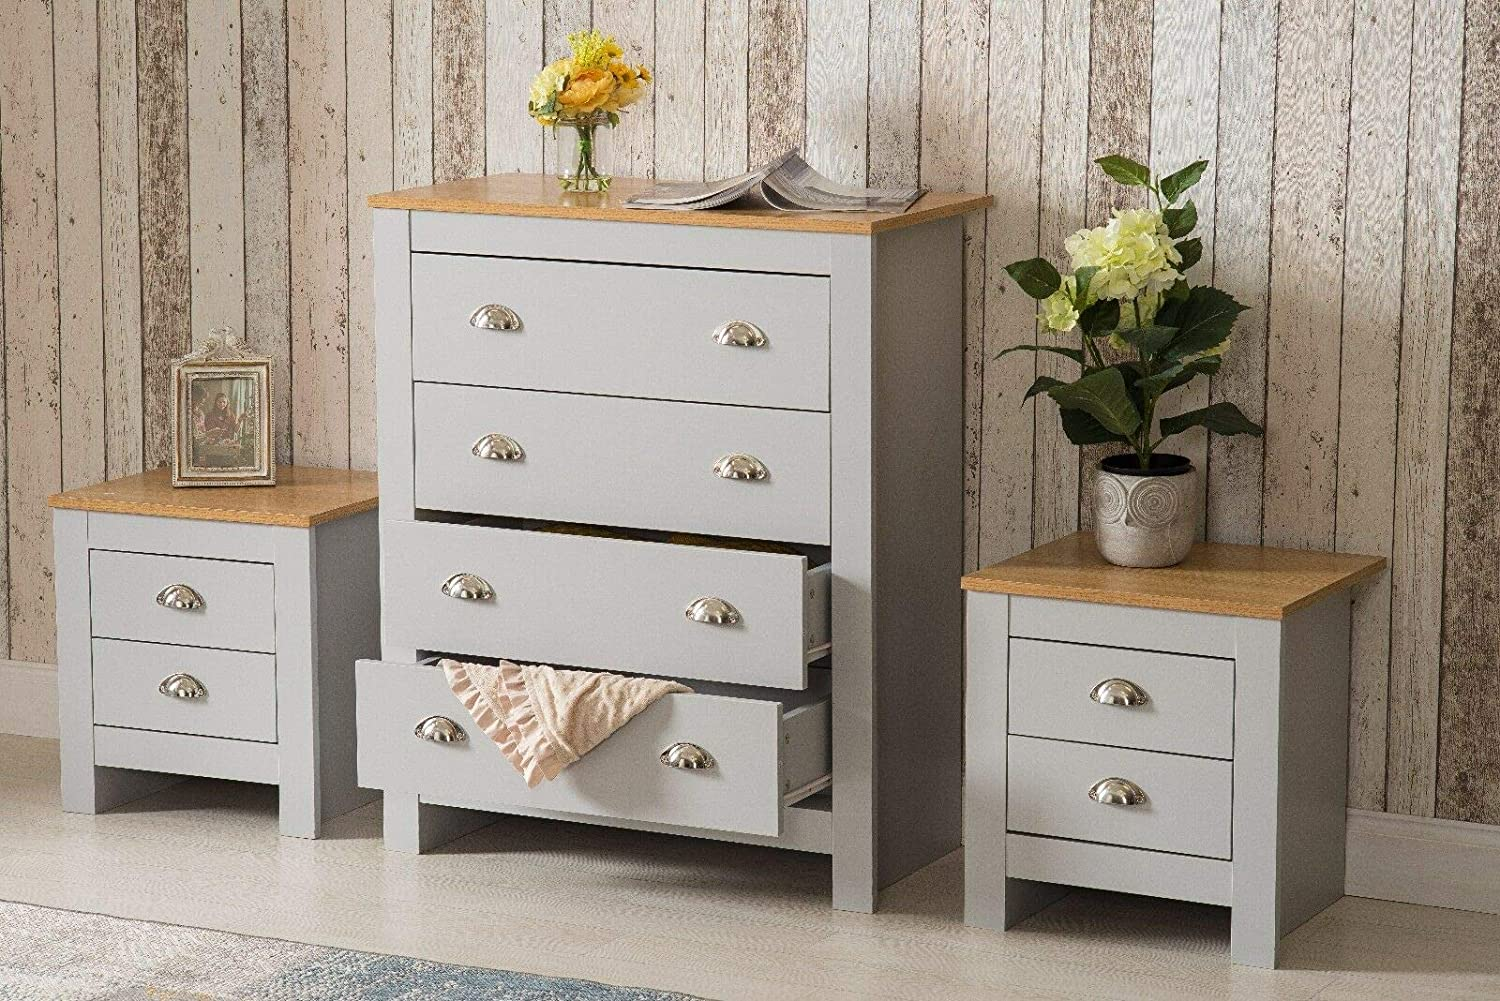 one Roomee Country style Bedroom Furniture Chest of 4 Drawers Bedside tables Grey